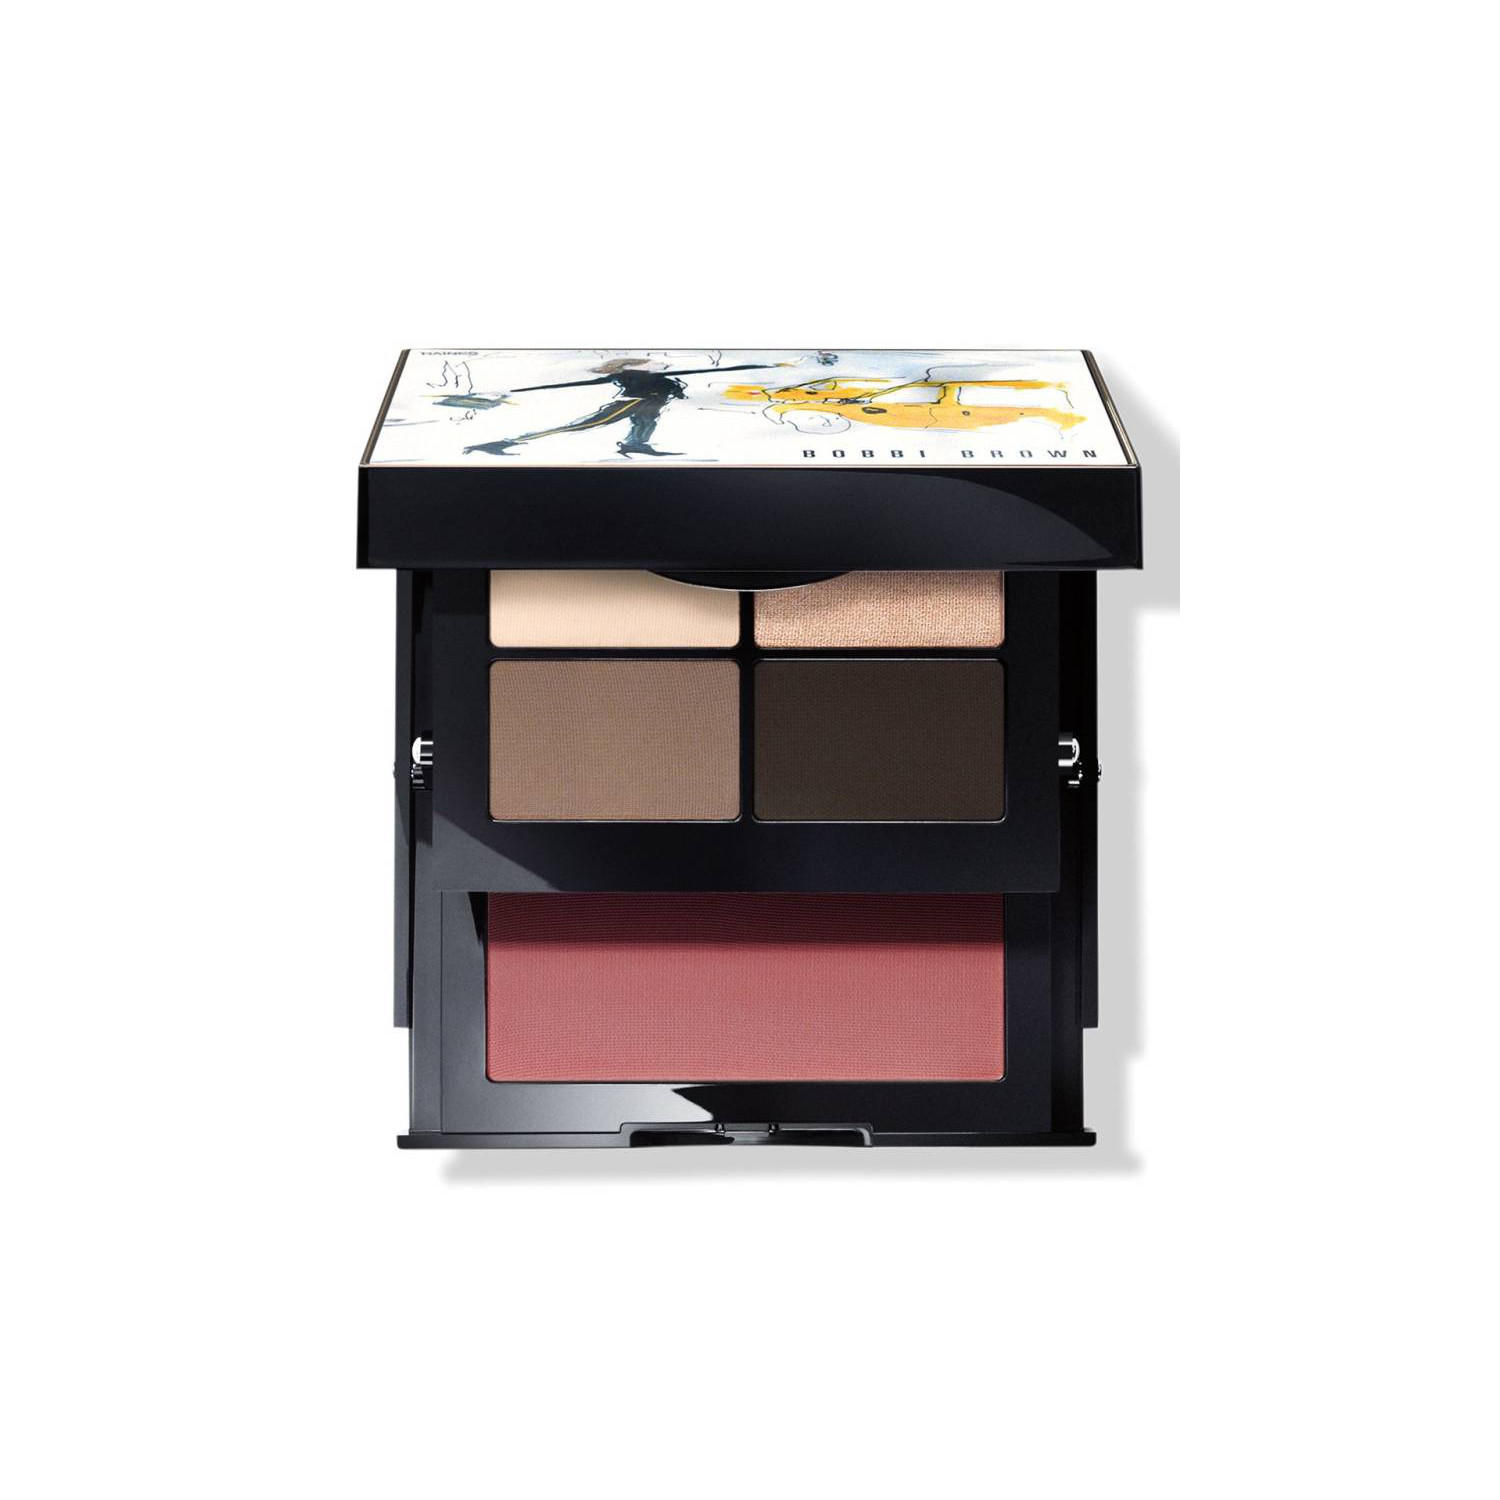 Bobbi Brown New York Palette